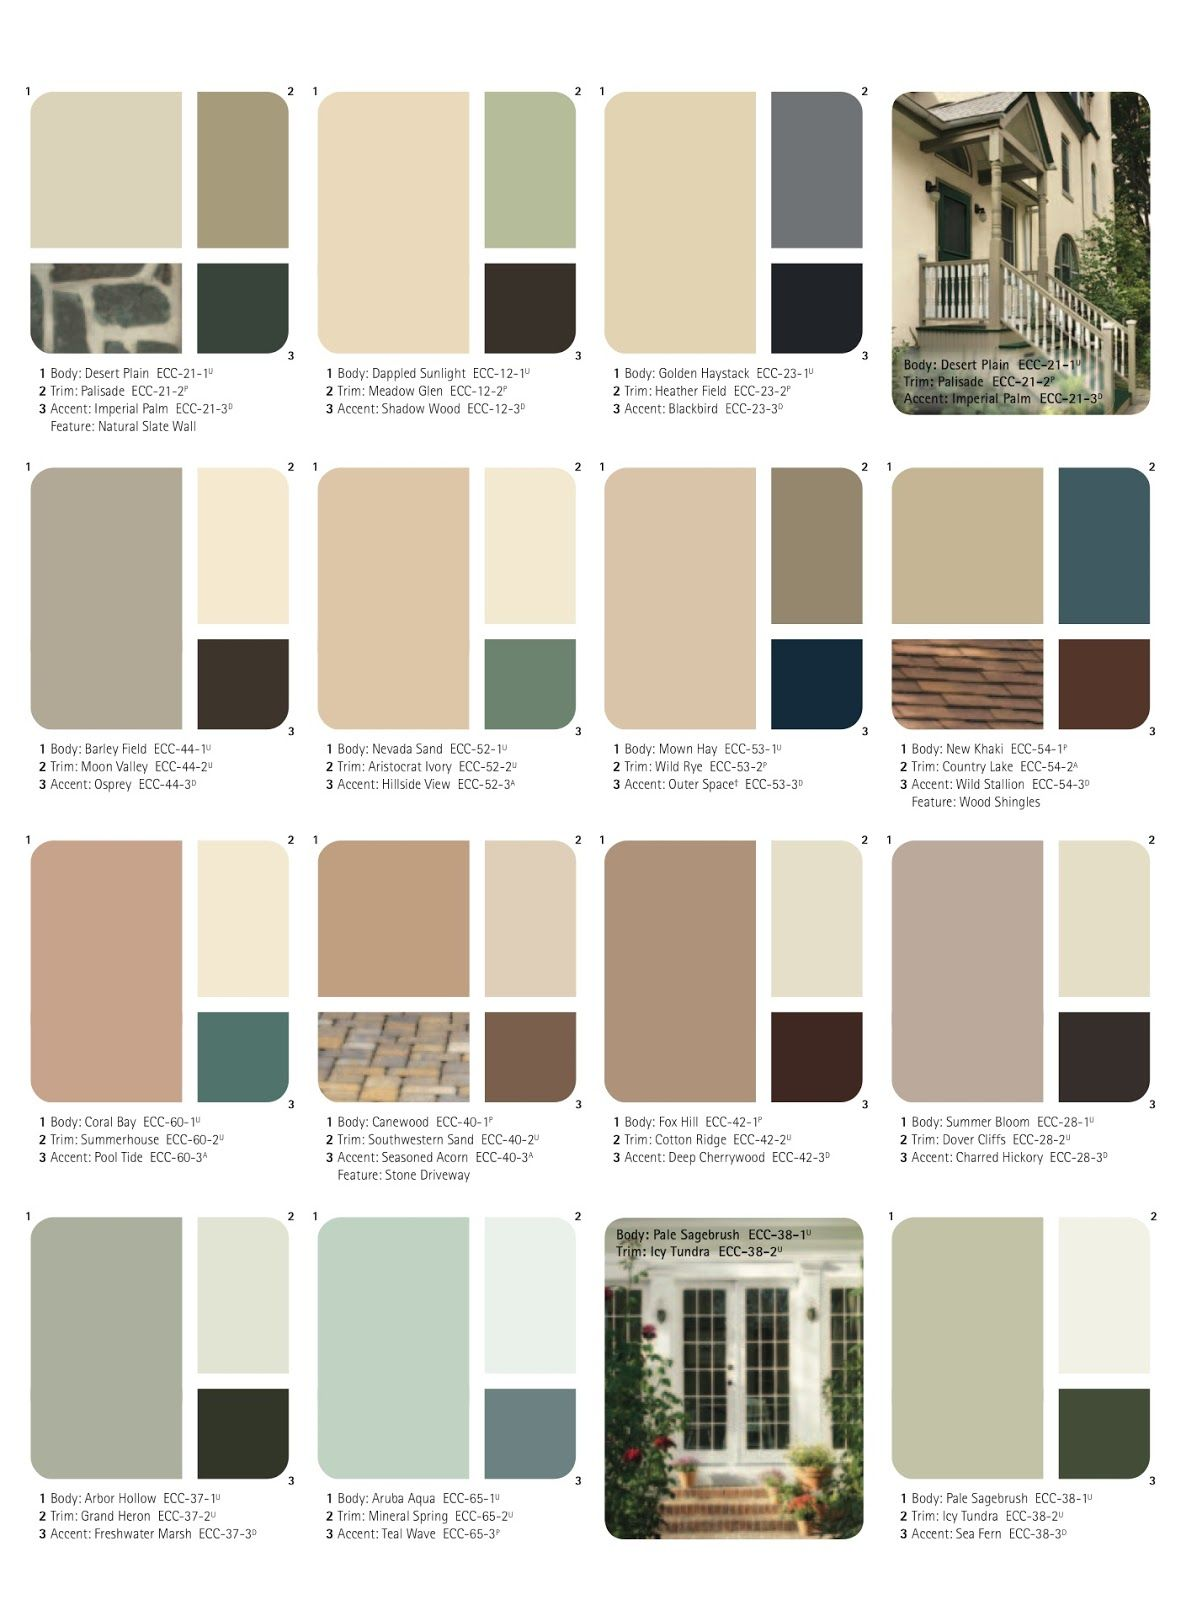 Tremendous 17 Best Images About What Color Should I Paint The House On Largest Home Design Picture Inspirations Pitcheantrous